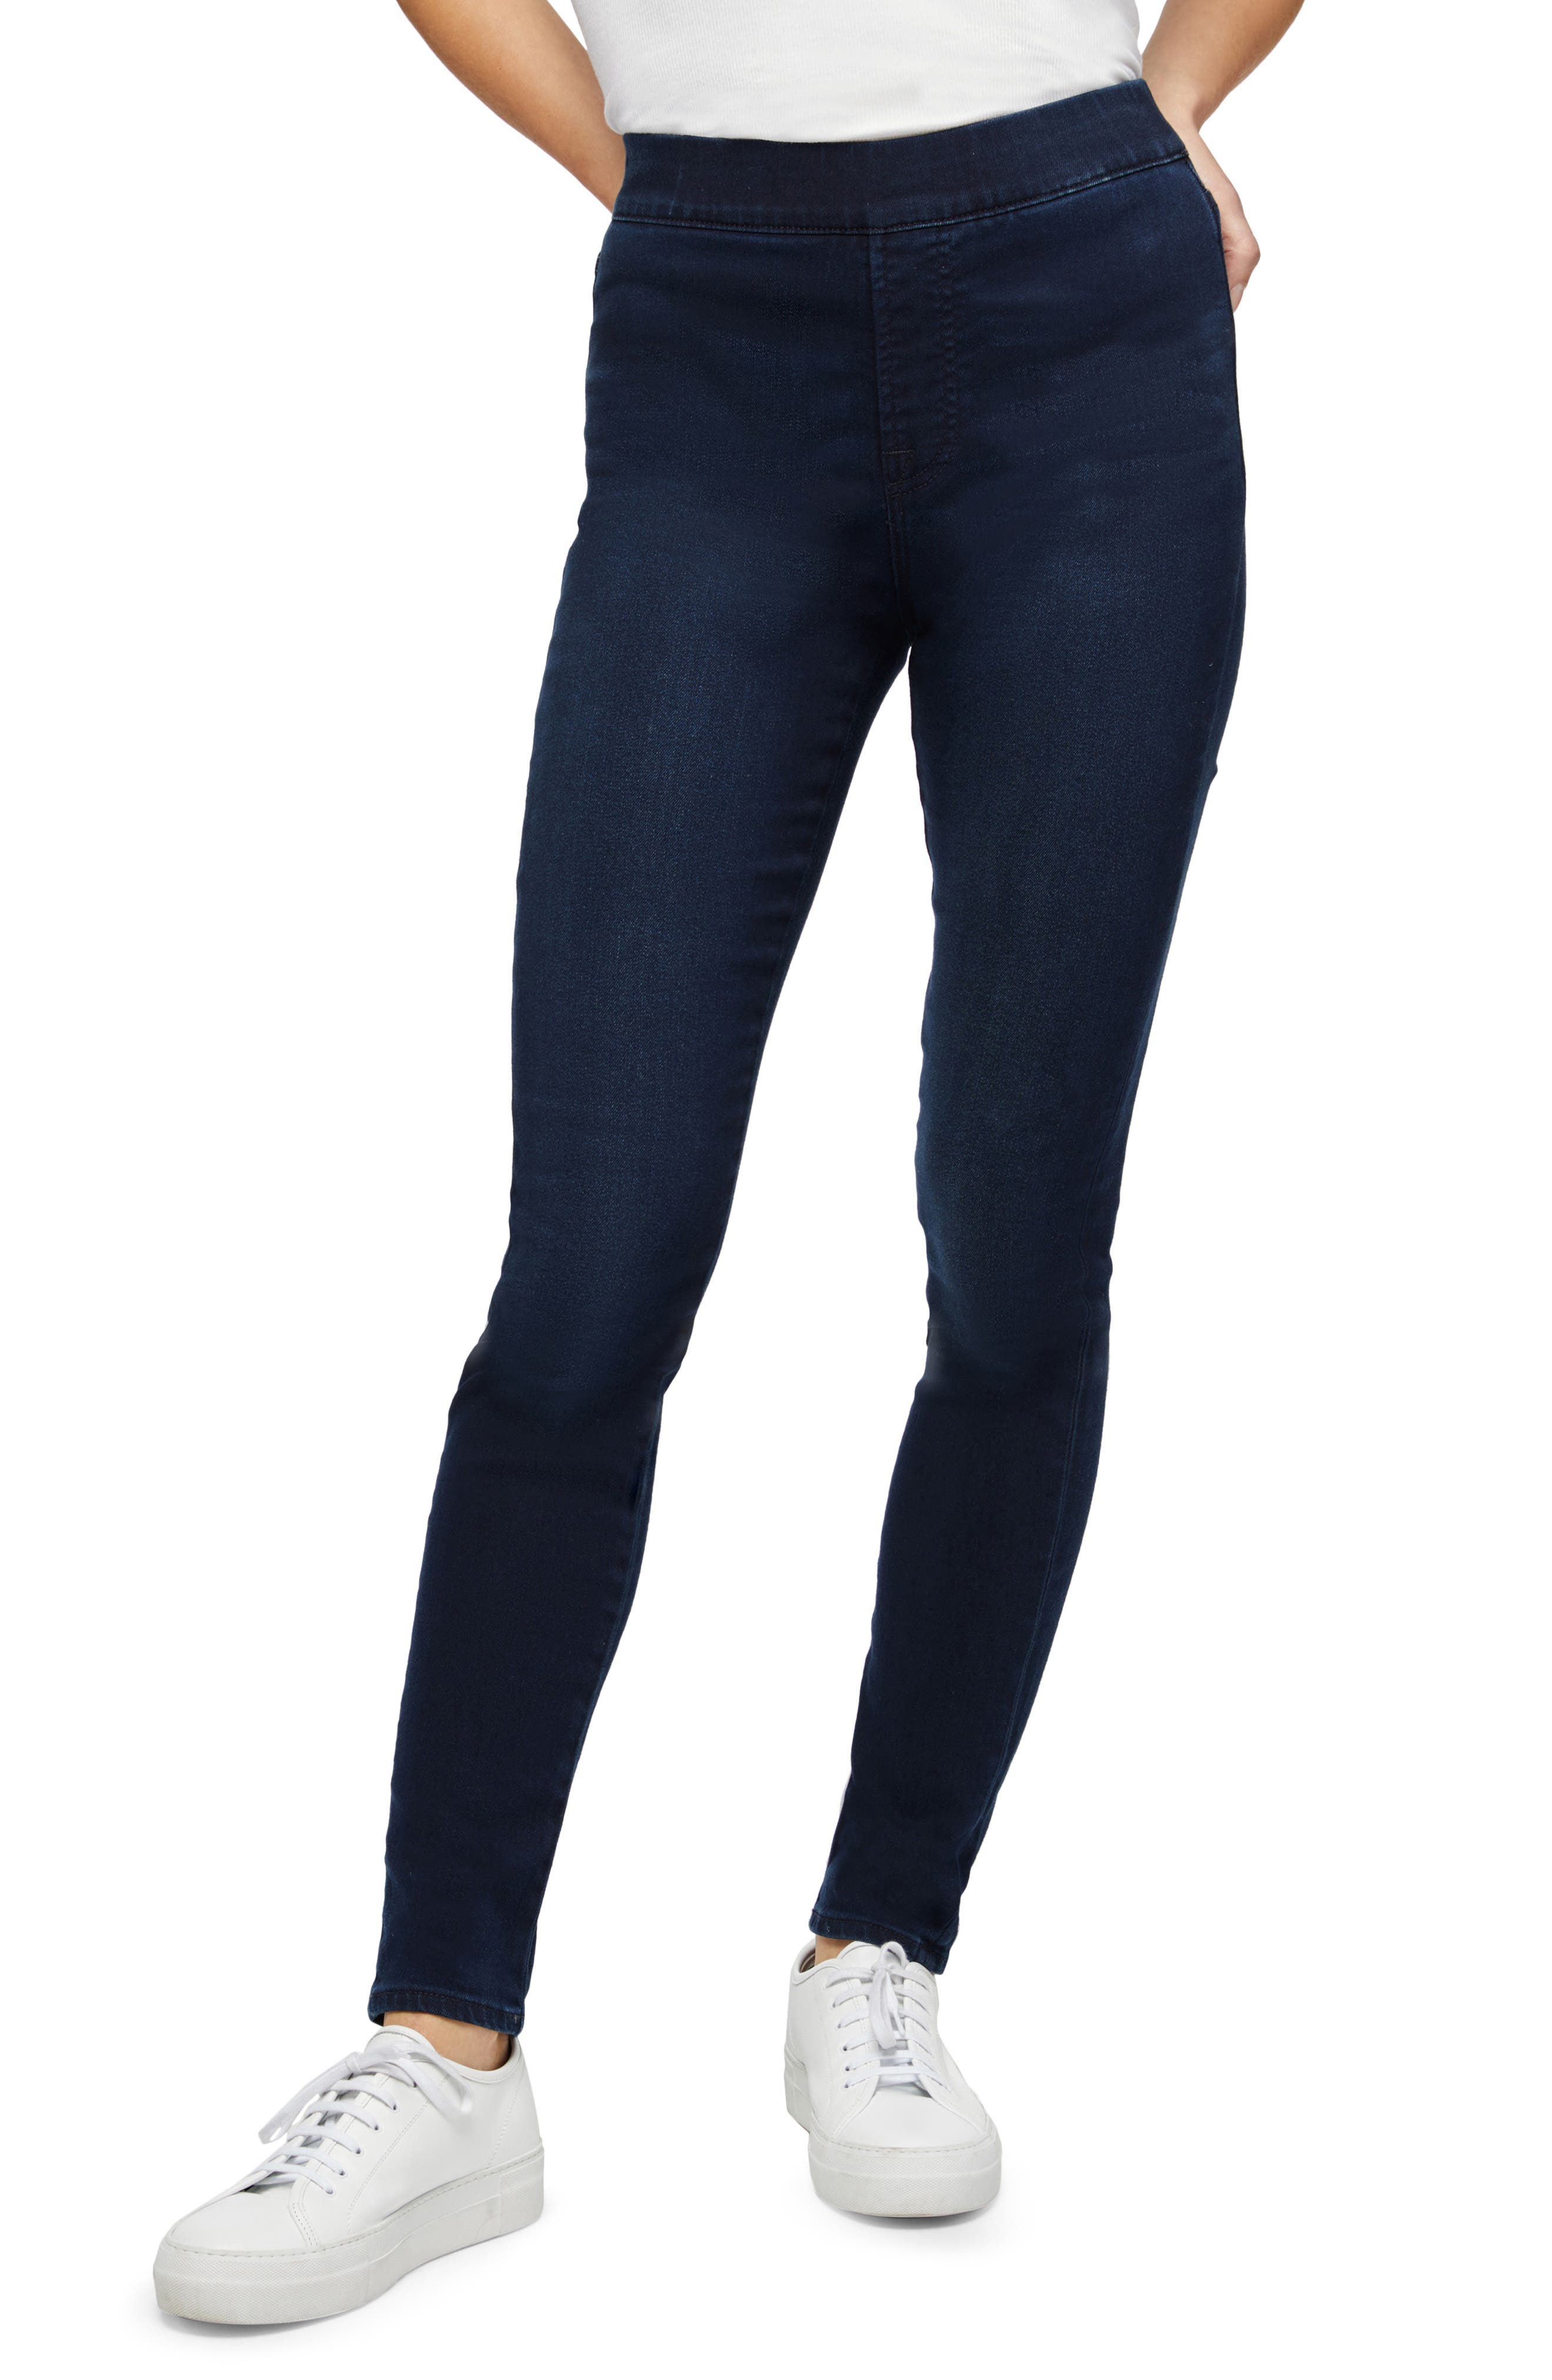 By 7 For All Mankind Pull-On Skinny Jeans